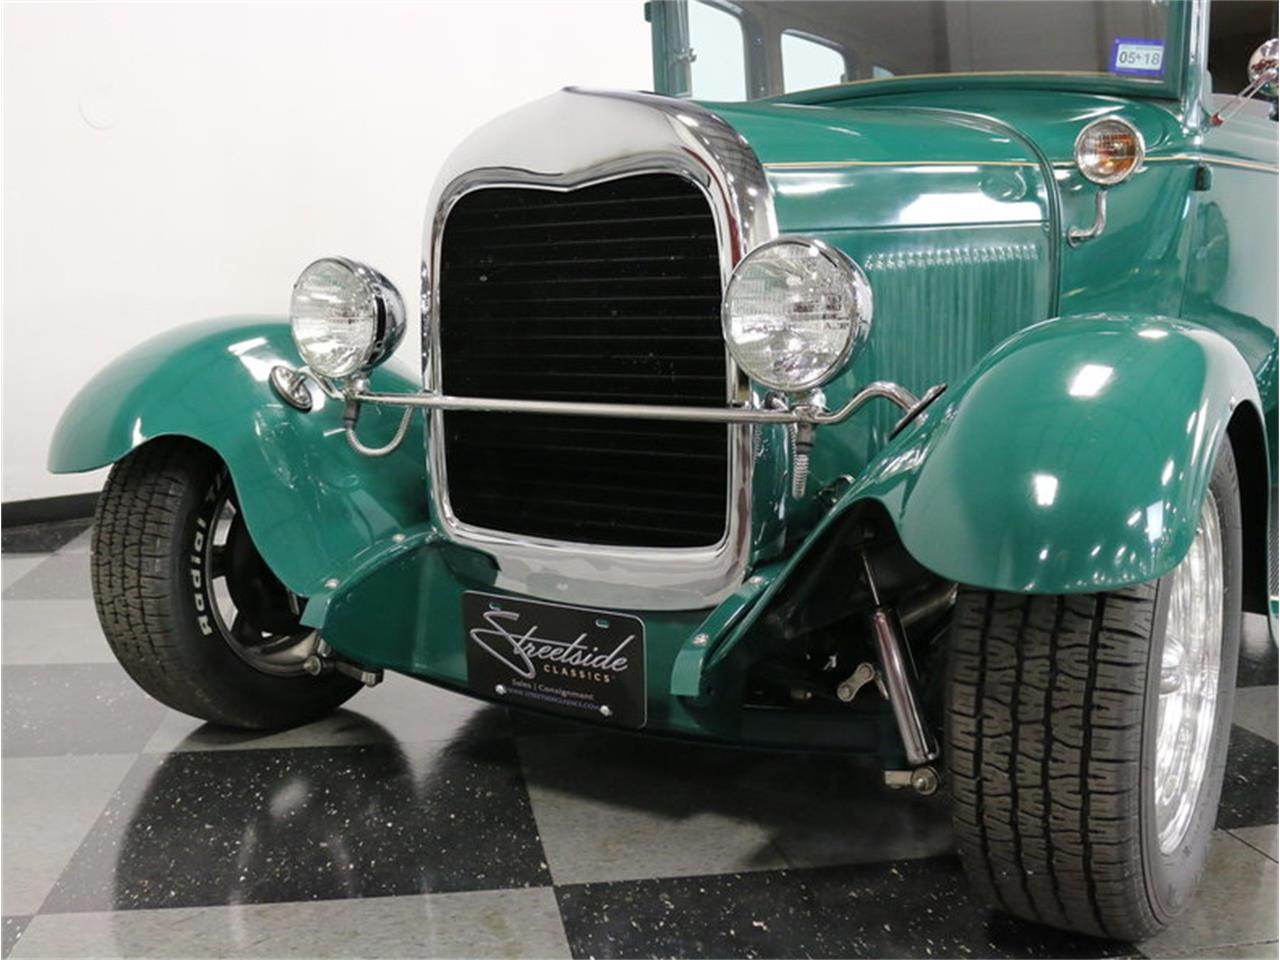 Large Picture of 1929 Ford Model A located in Texas Offered by Streetside Classics - Dallas / Fort Worth - MAV8